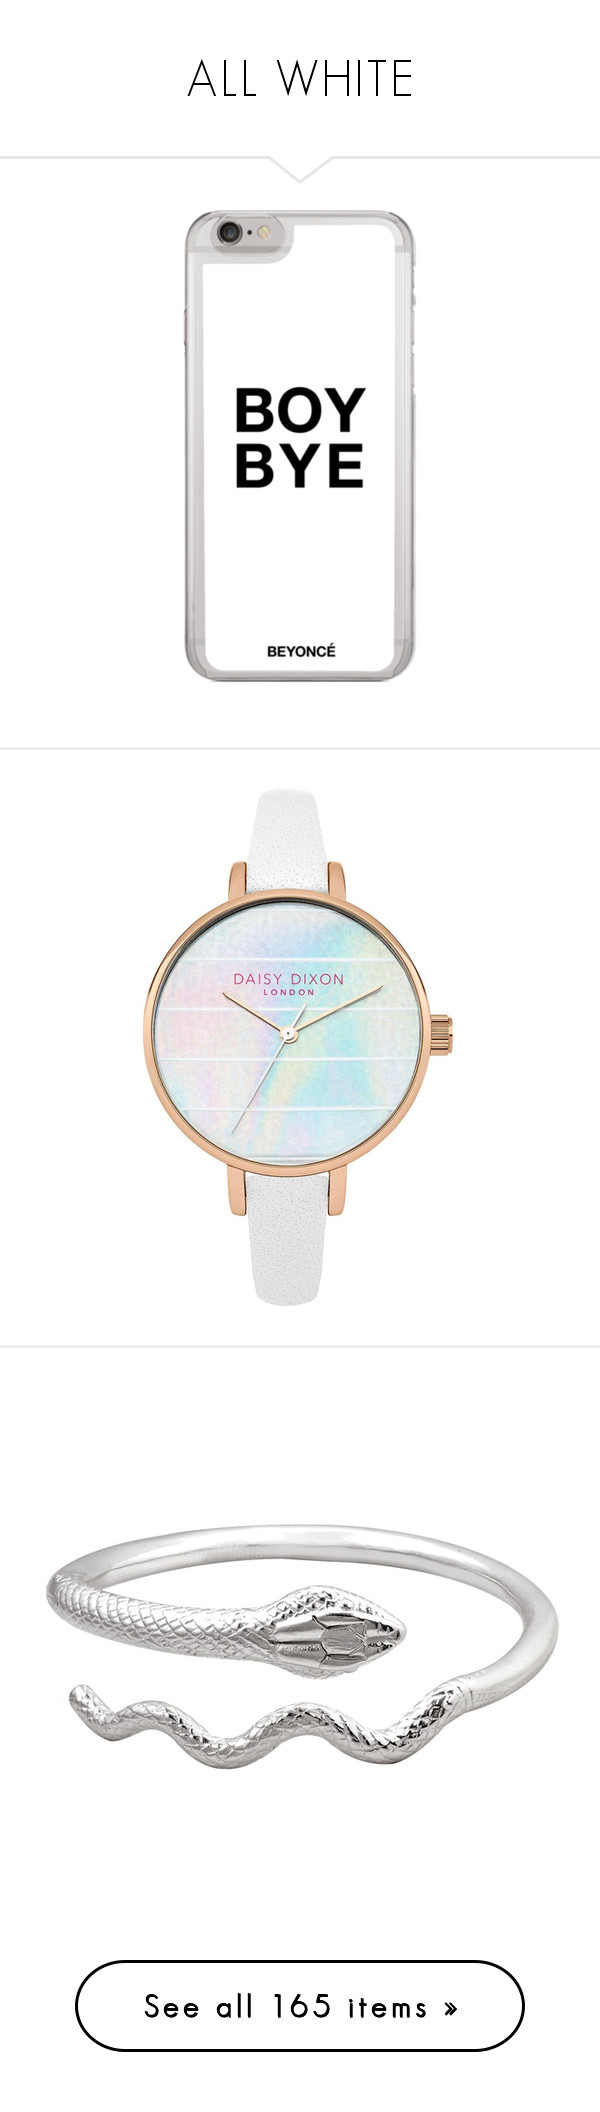 """ALL WHITE"" by hemmingsbxtch ❤ liked on Polyvore featuring accessories, tech accessories, iphone cover case, iphone sleeve case, jewelry, watches, iridescent jewelry, water resistant watches, metallic jewelry and leather strap watches"